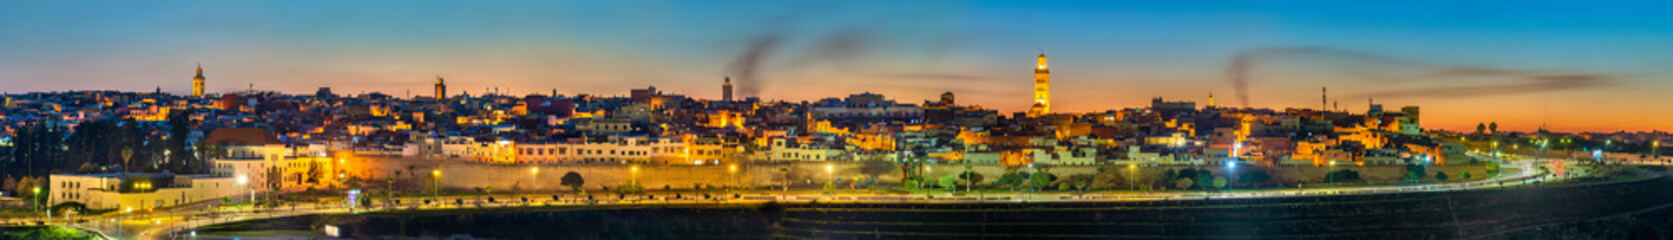 Panorama of Meknes in the evening - Morocco